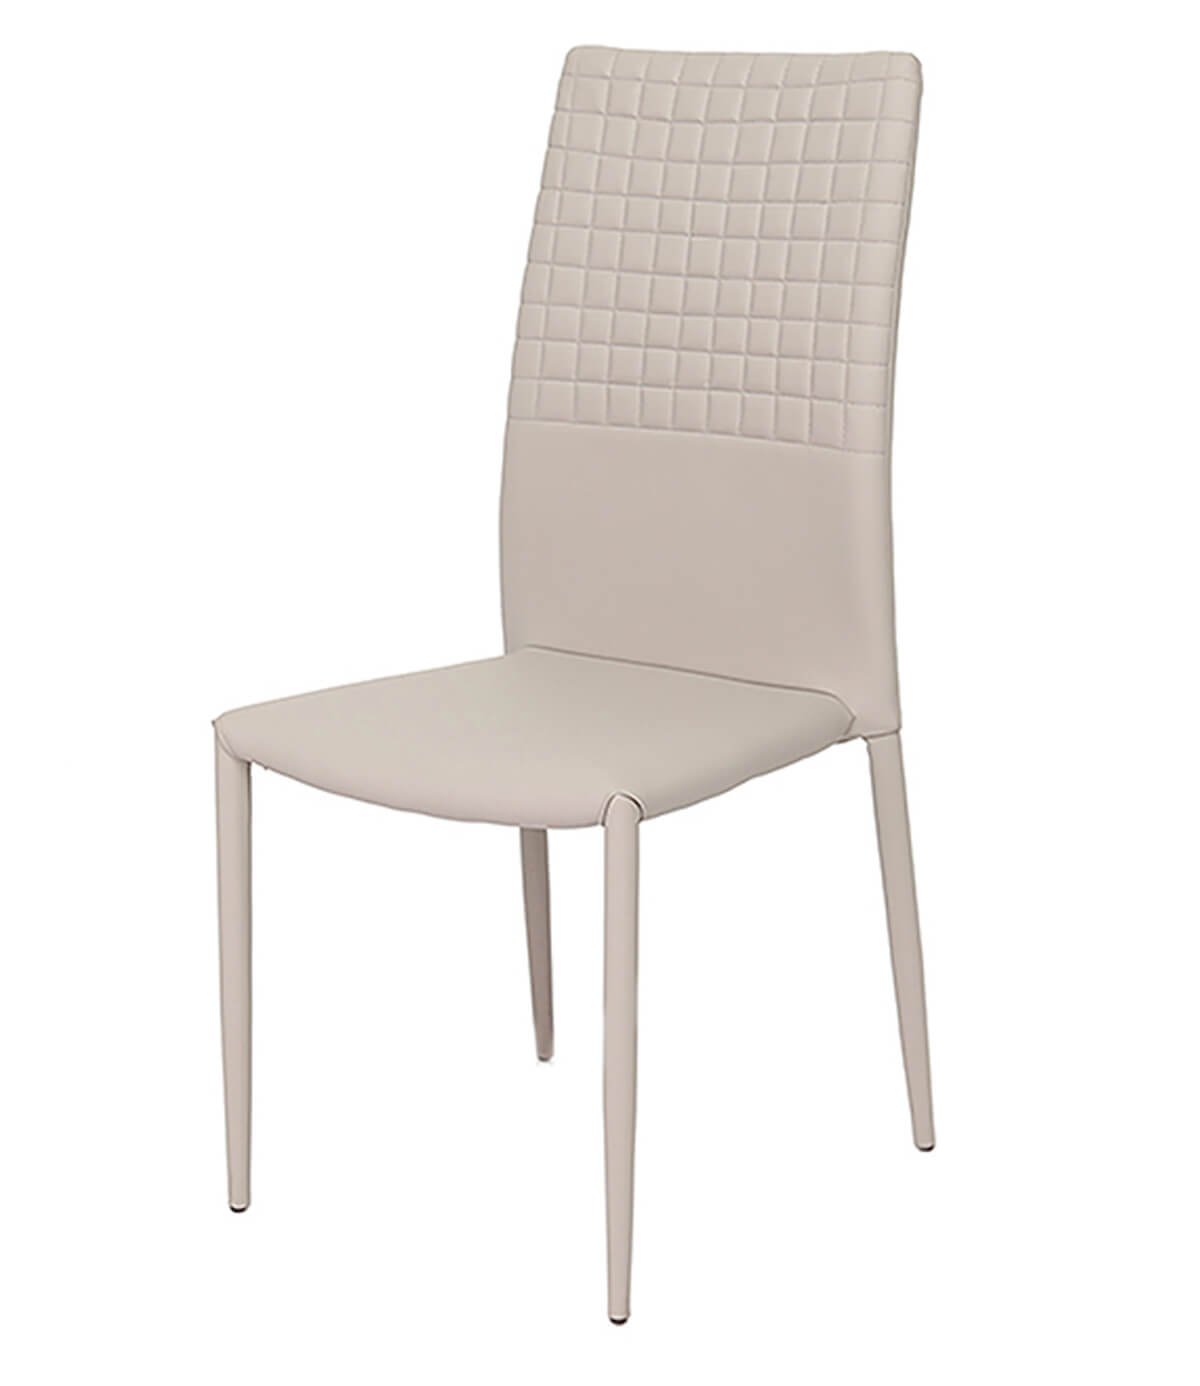 modern grey dining chairs uk lawn chair covers home depot cuba mink faux leather